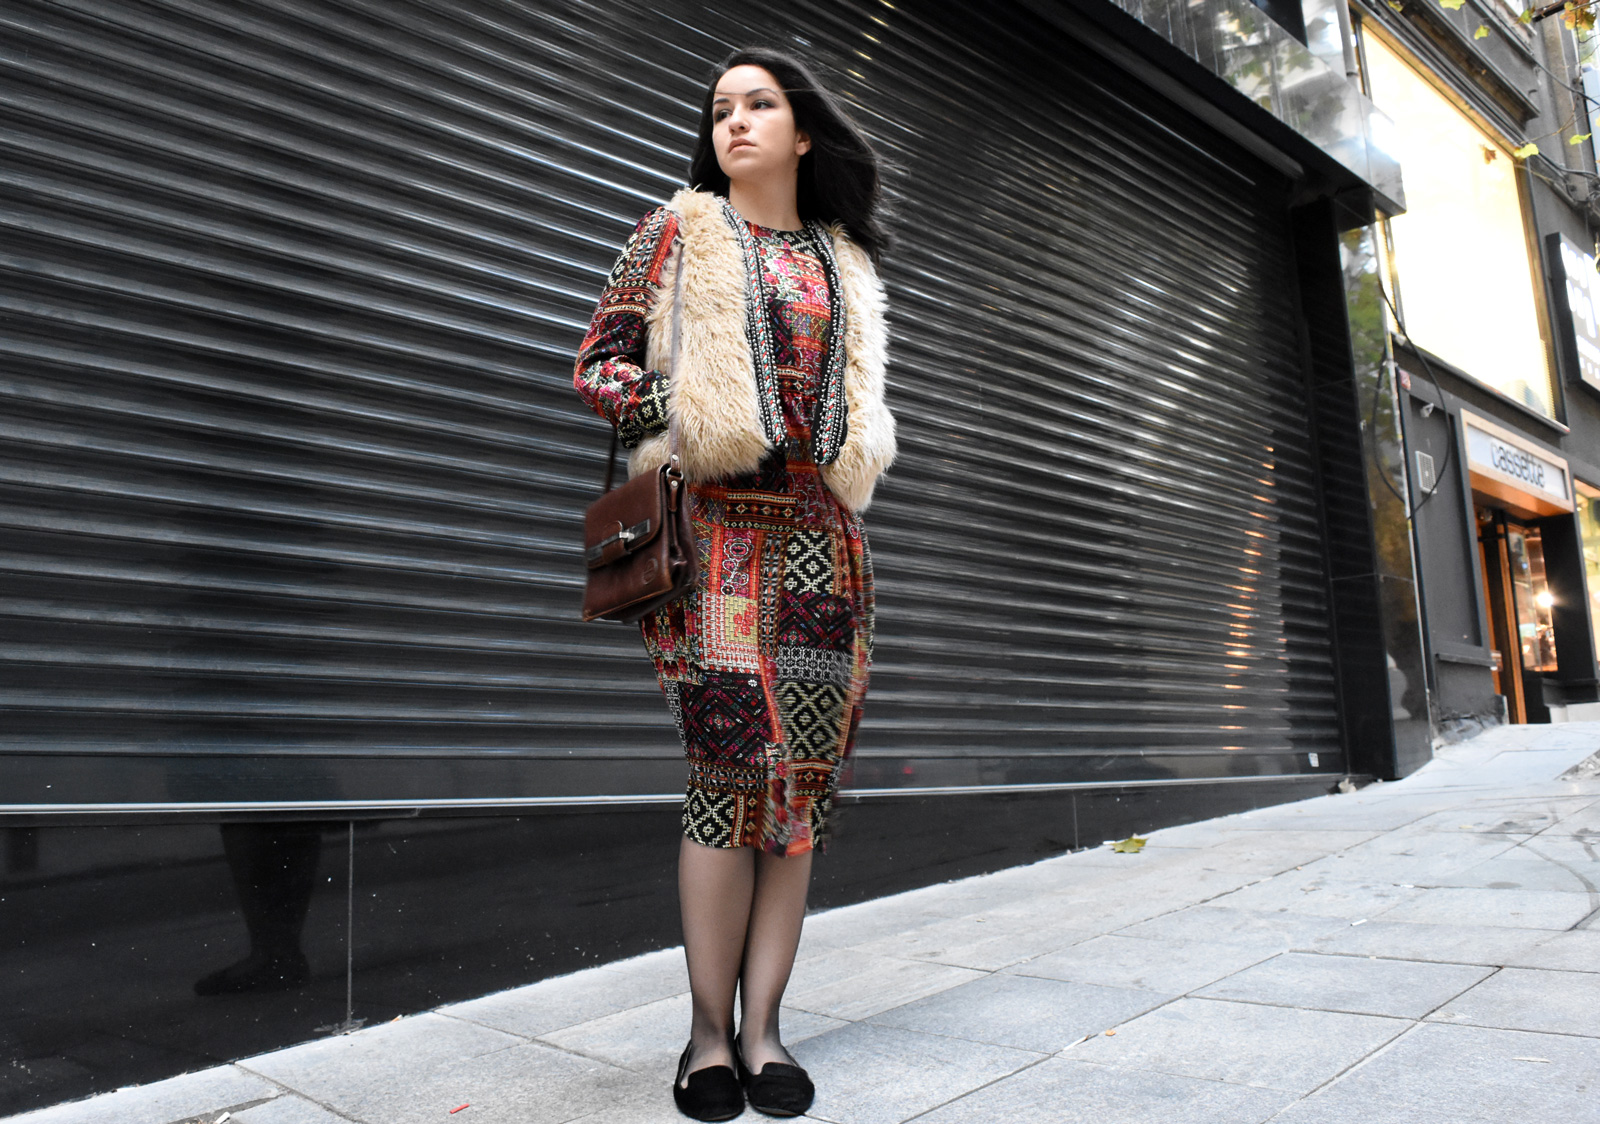 Weekend mode on-sevgin goktas ozsan-sevgingo-zara hm waistcoat patchwork dress DSC_2901